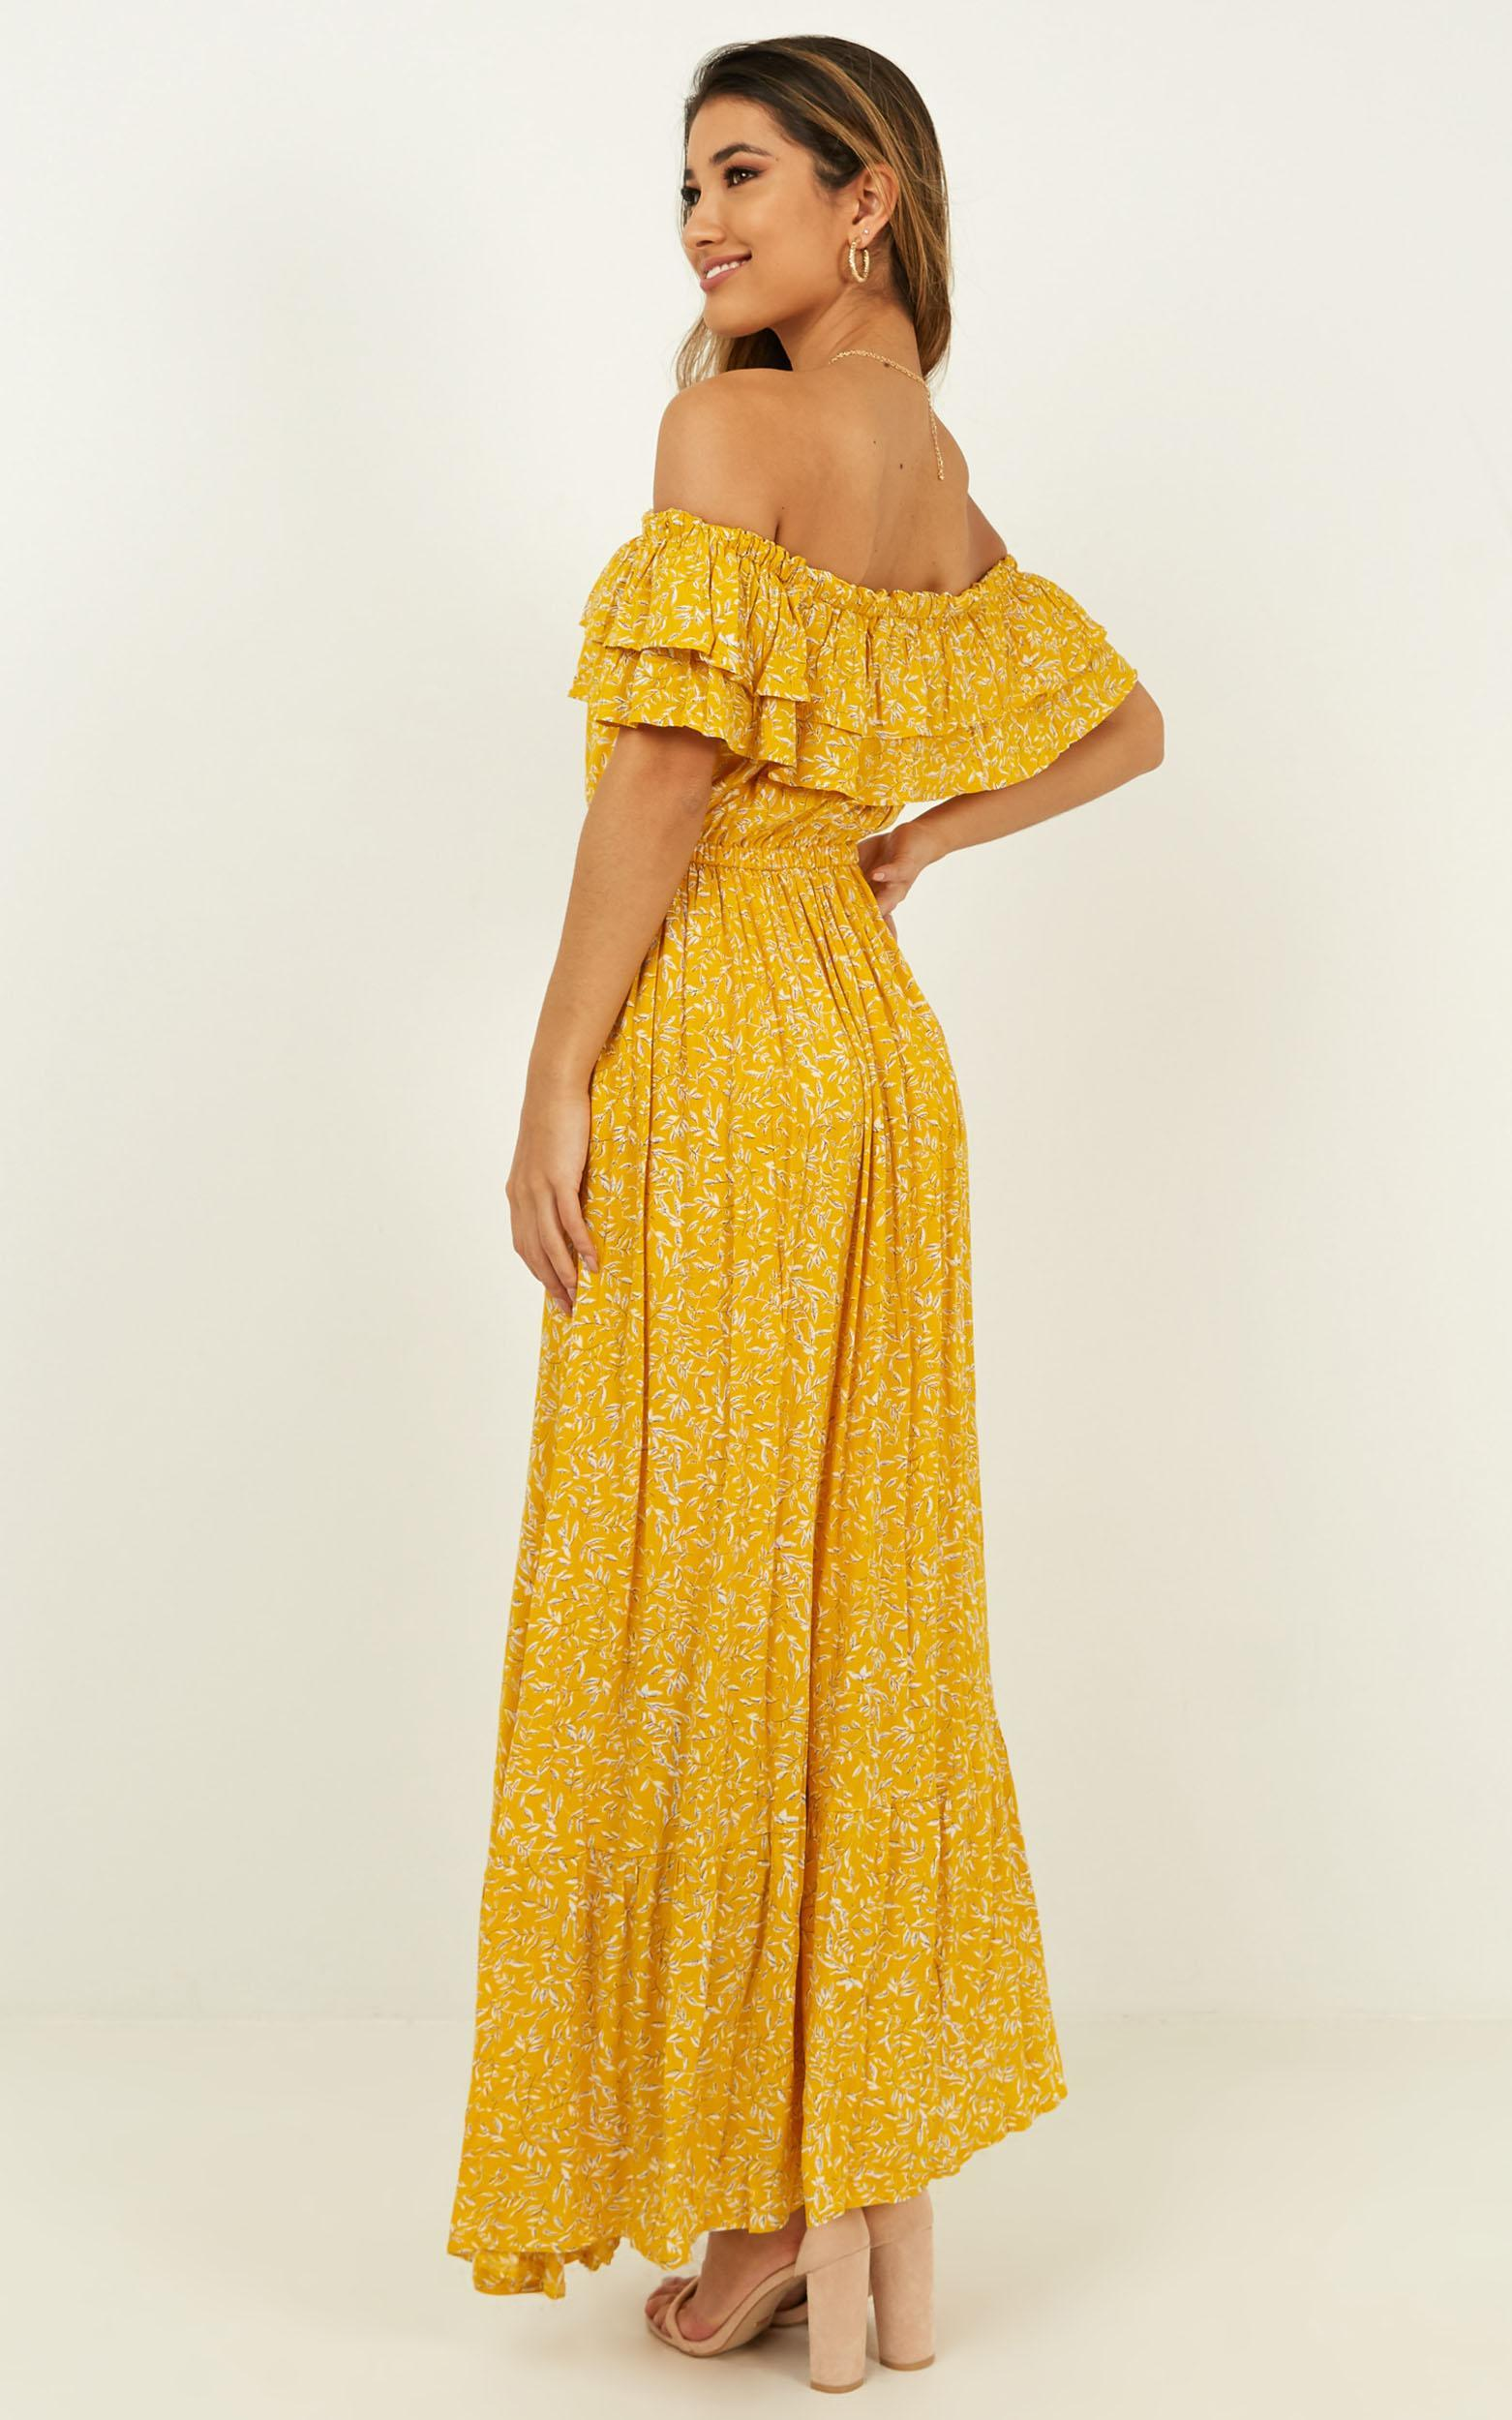 Notre Dame Maxi Dress in yellow floral - 4 (XXS), Yellow, hi-res image number null